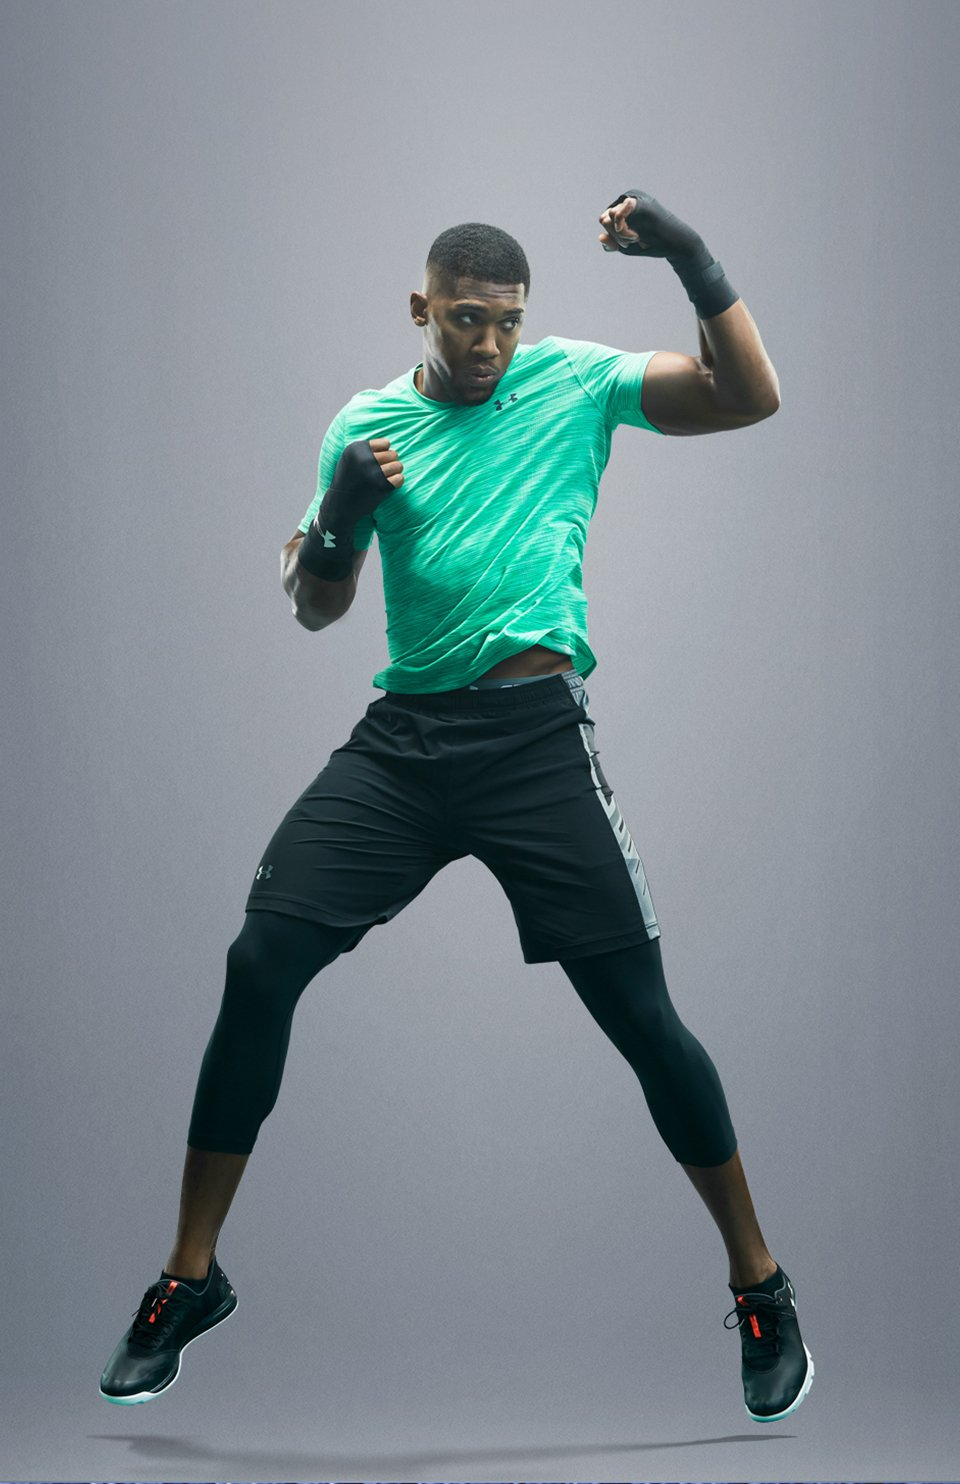 Heavyweight Champion Anthony Joshua is doing boxing training in a green Threadborne Seamless T-shirt